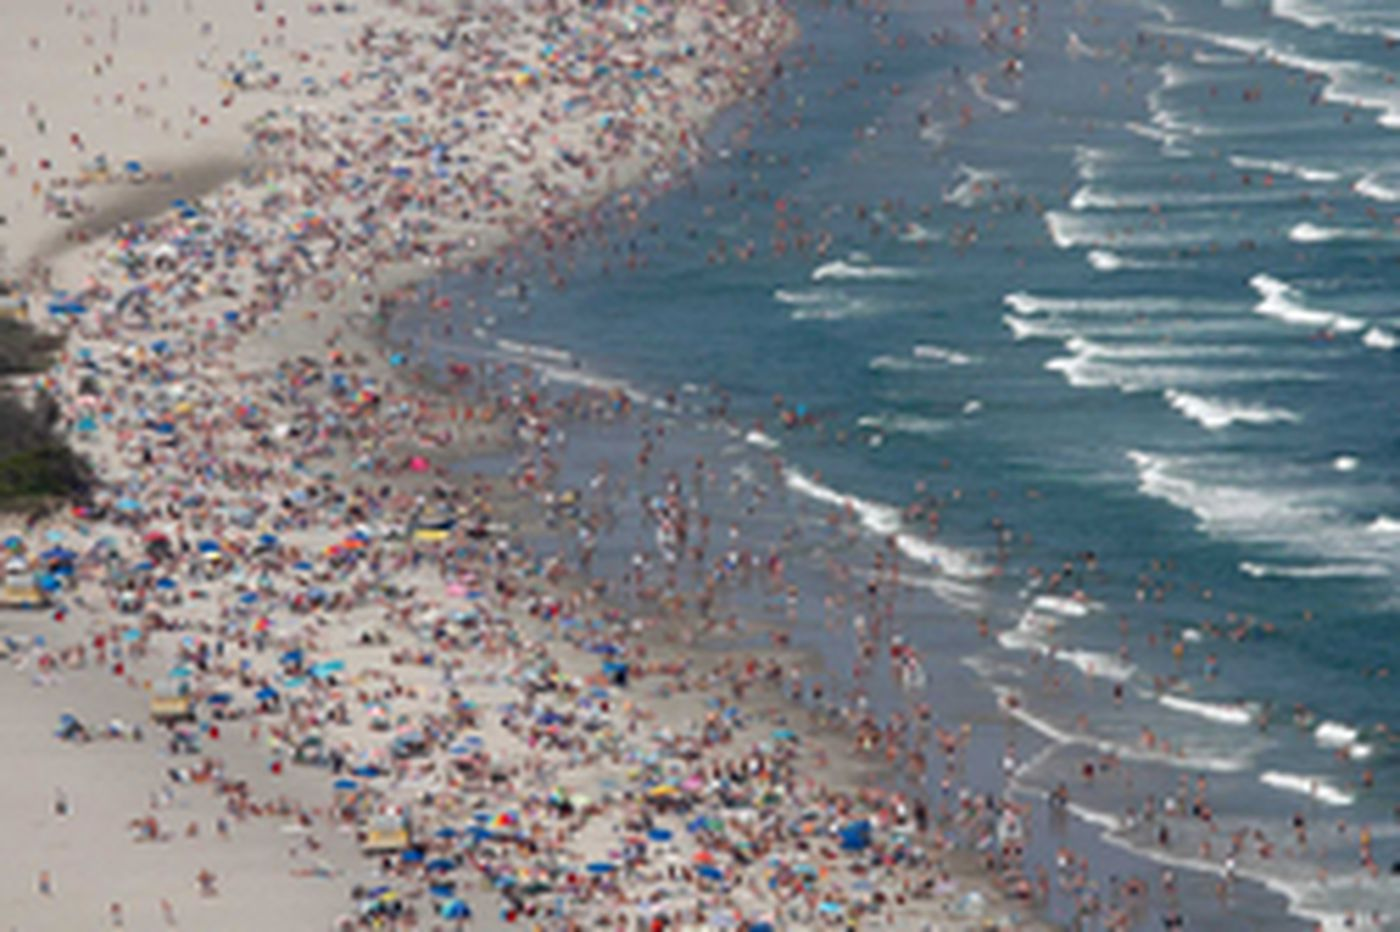 Still going downashore: Beachgoers, undaunted by high gas prices, head for familiar haunts